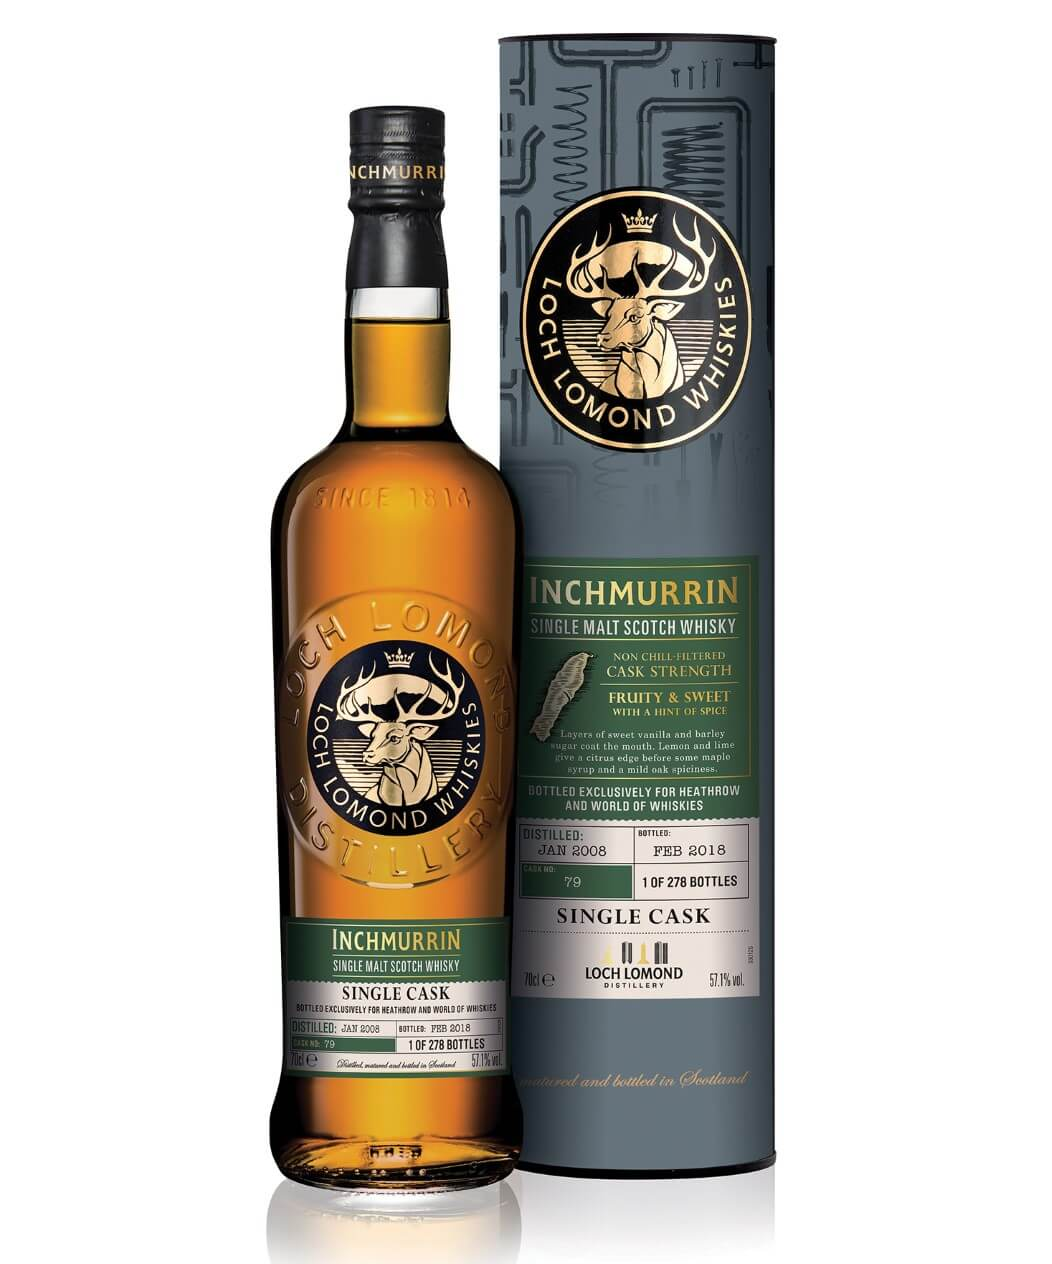 Loch Lomond Inchmurrin Single Cask